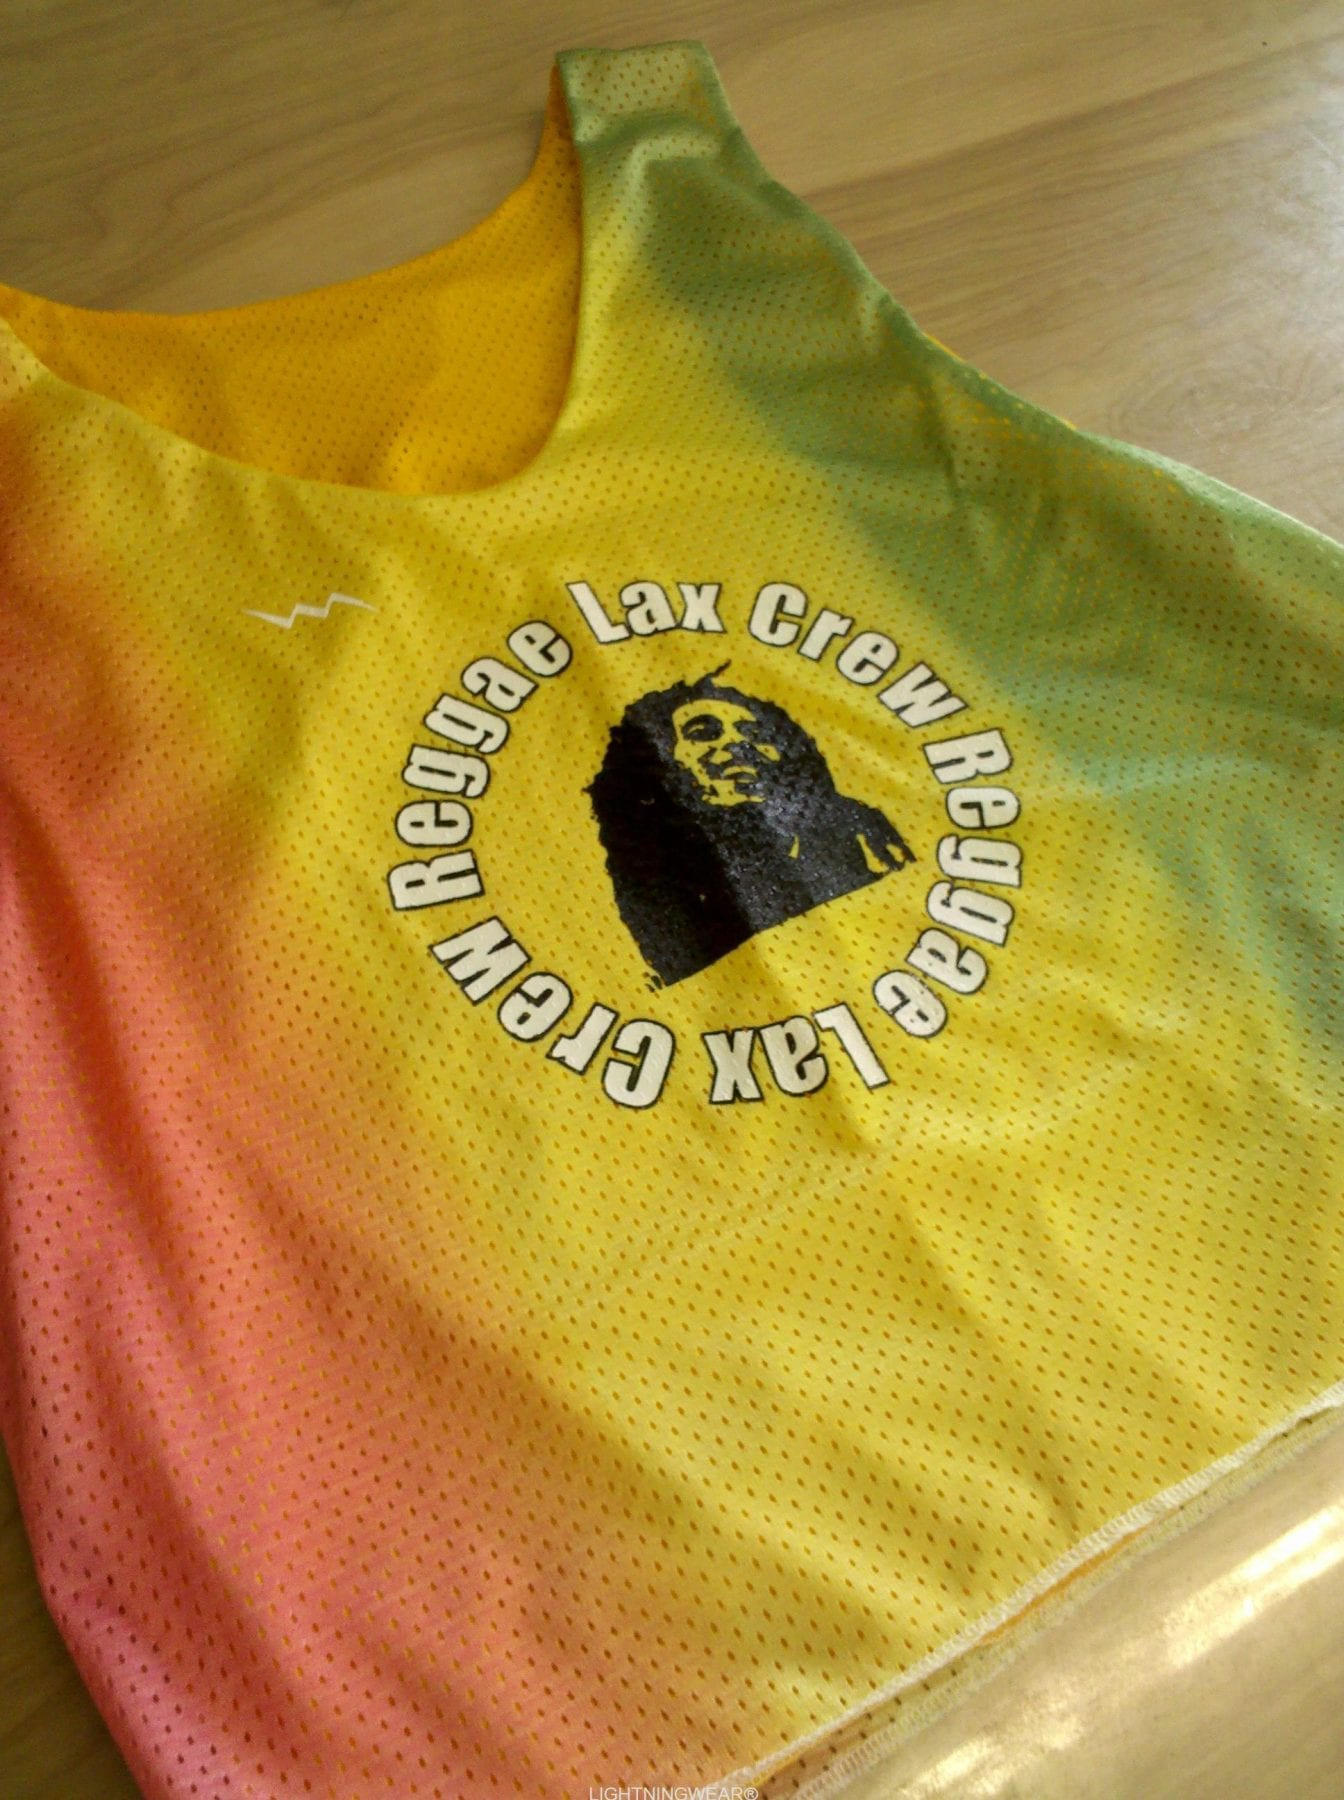 reggae lax crew pinnies